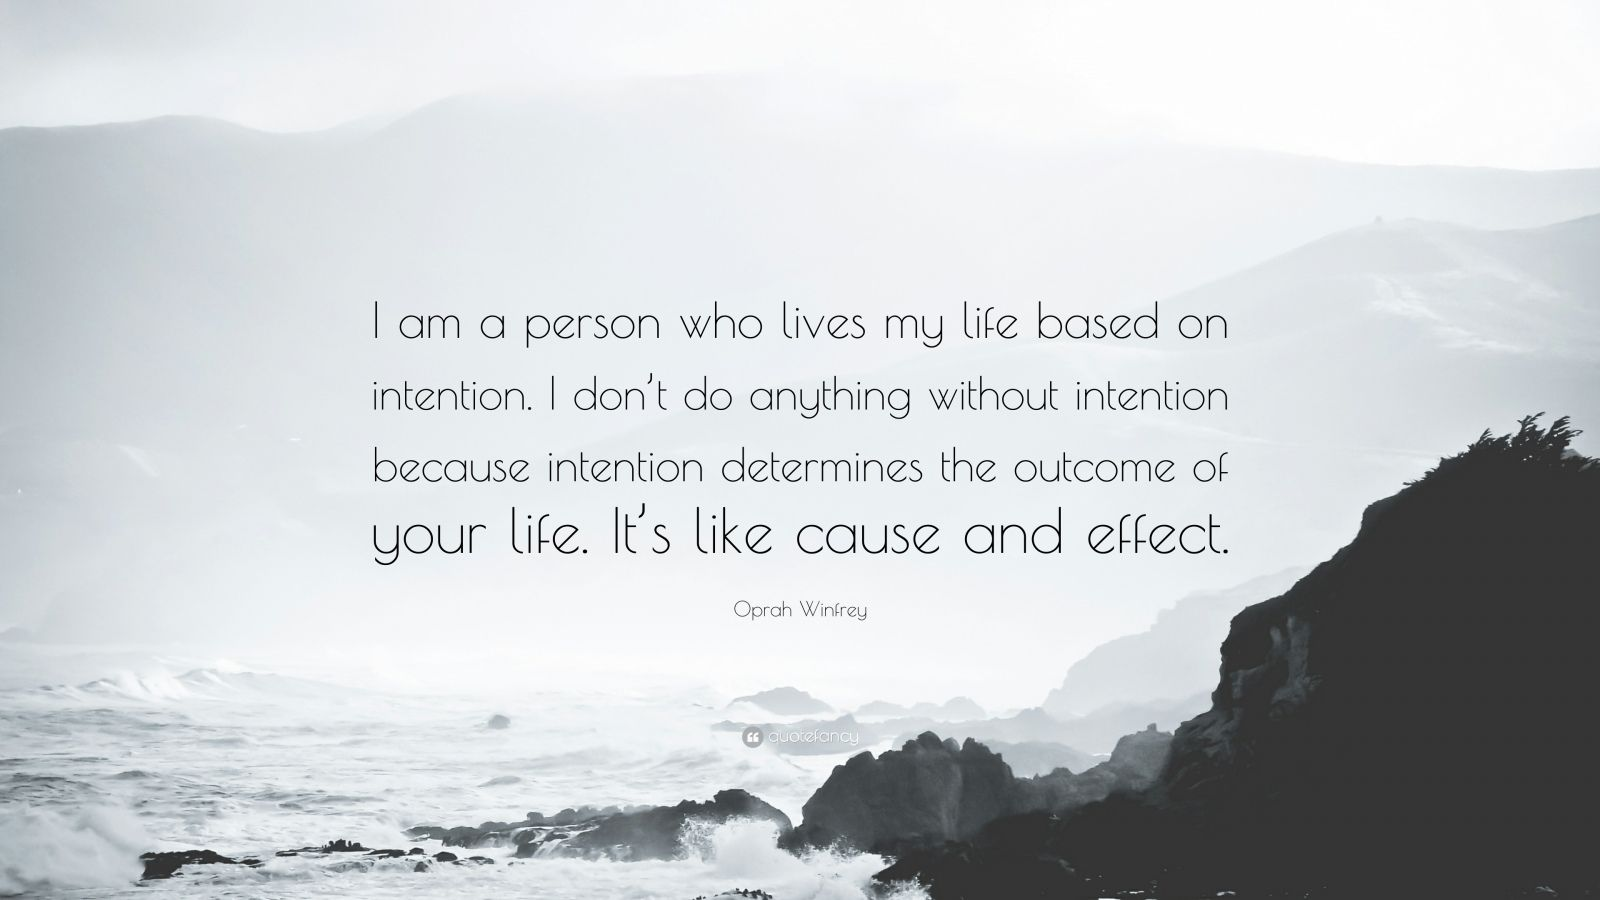 """Oprah Winfrey Quote: """"I am a person who lives my life based on intention. I don't do anything without intention because intention determines the outcome of your life. It's like cause and effect."""""""